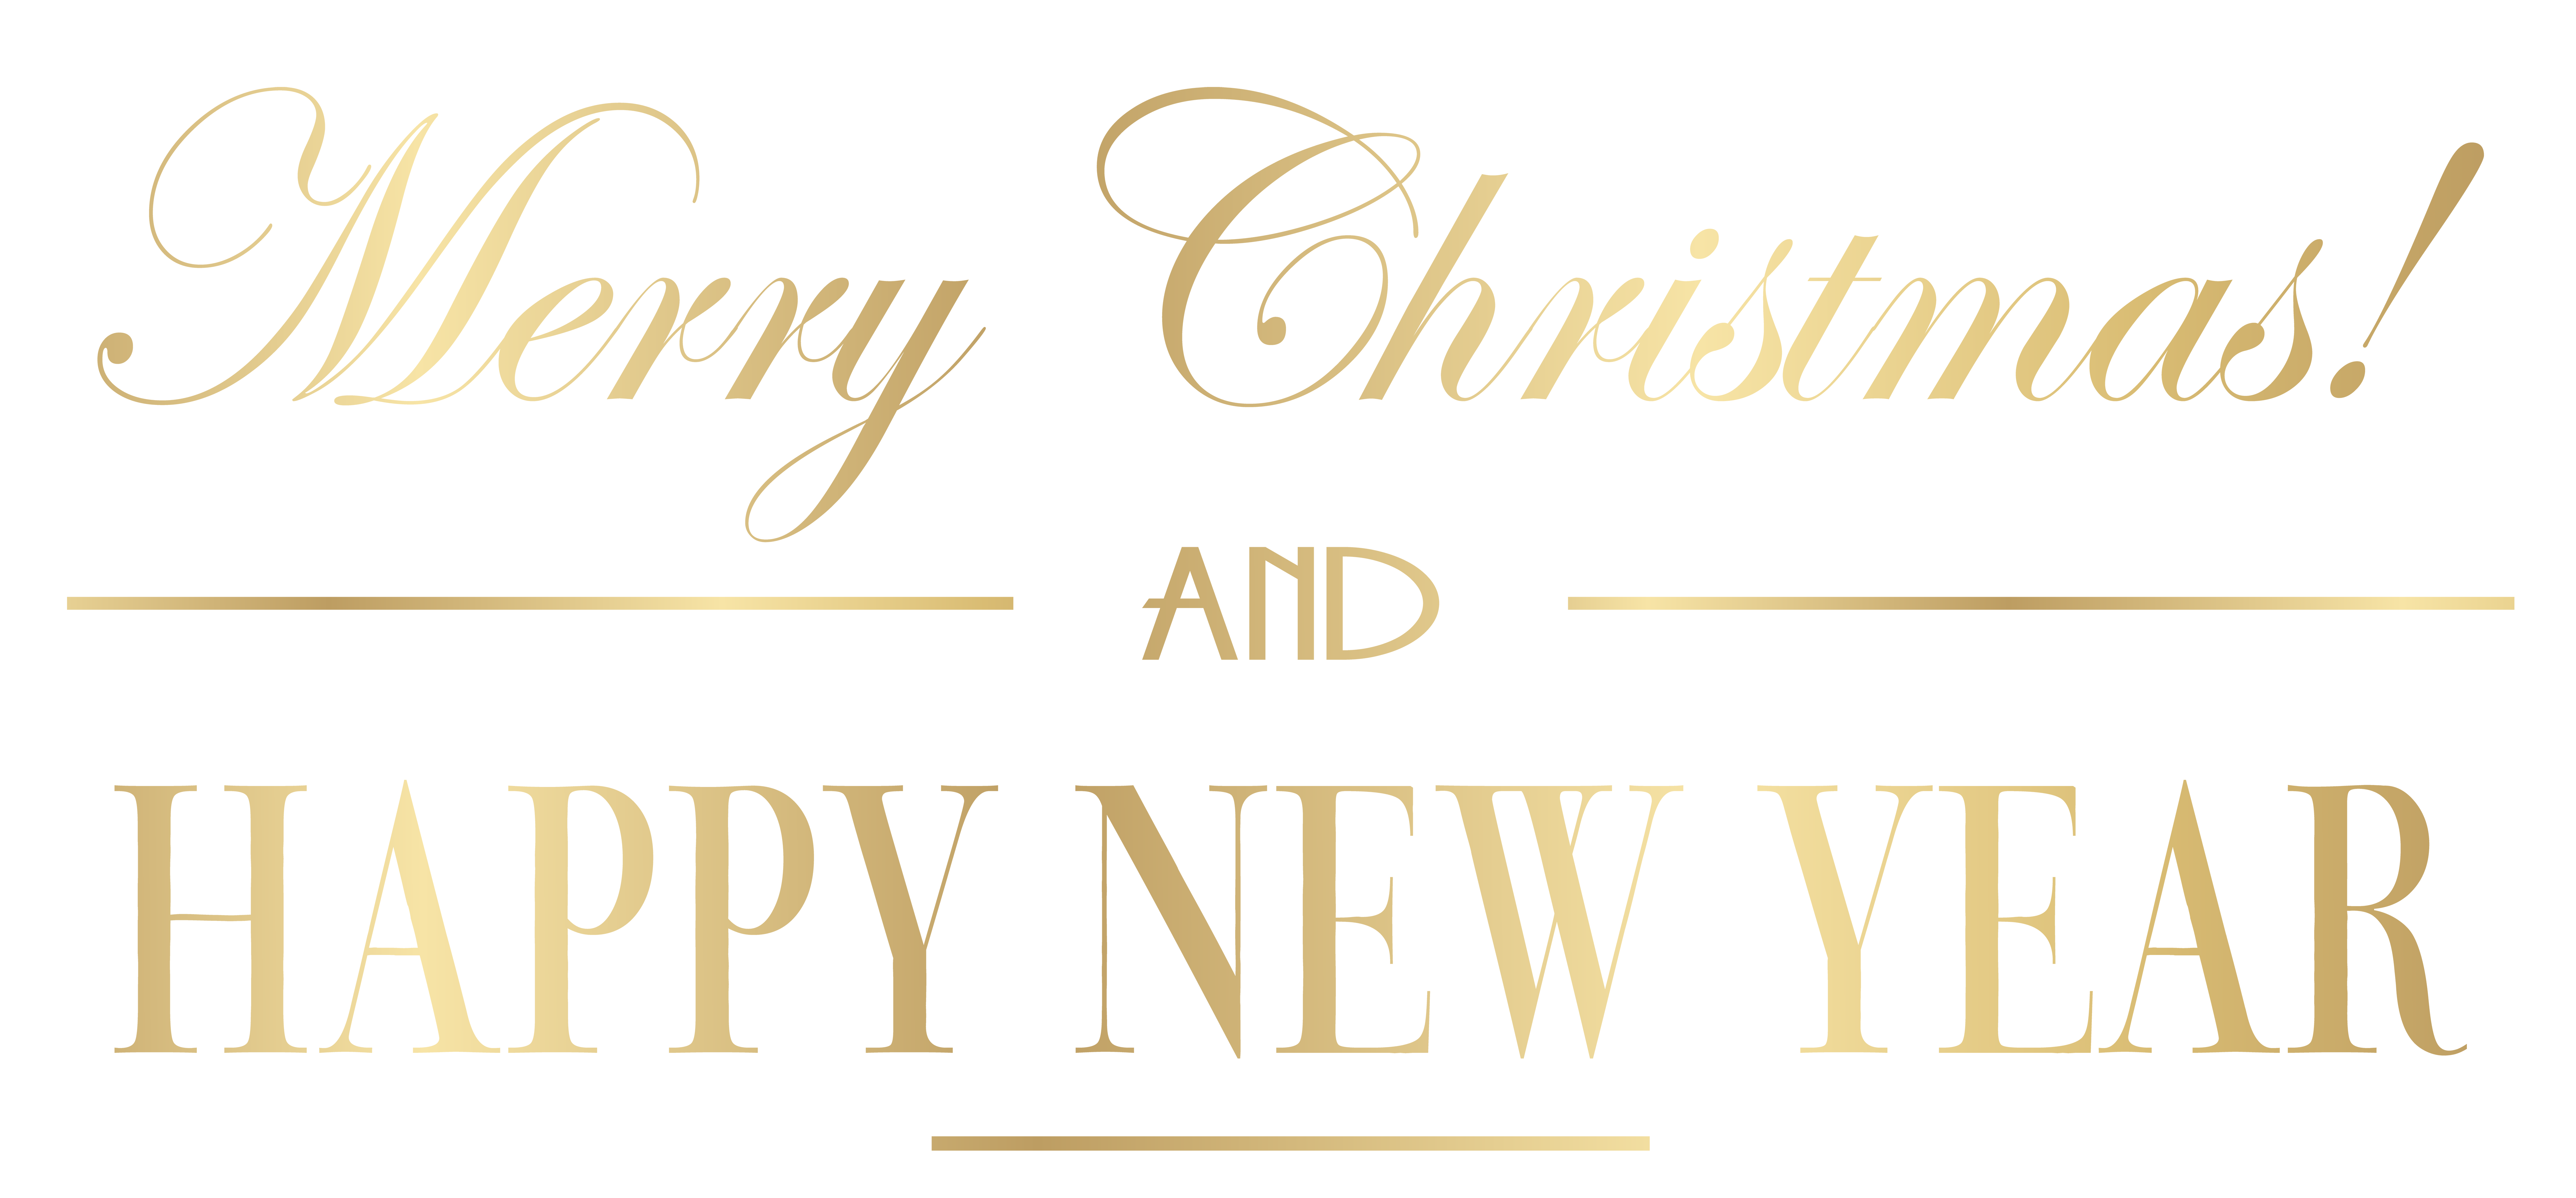 Merry christmas and happy new year clipart banner black and white Merry Christmas and Happy New Year PNG Clip Art Image   Gallery ... banner black and white